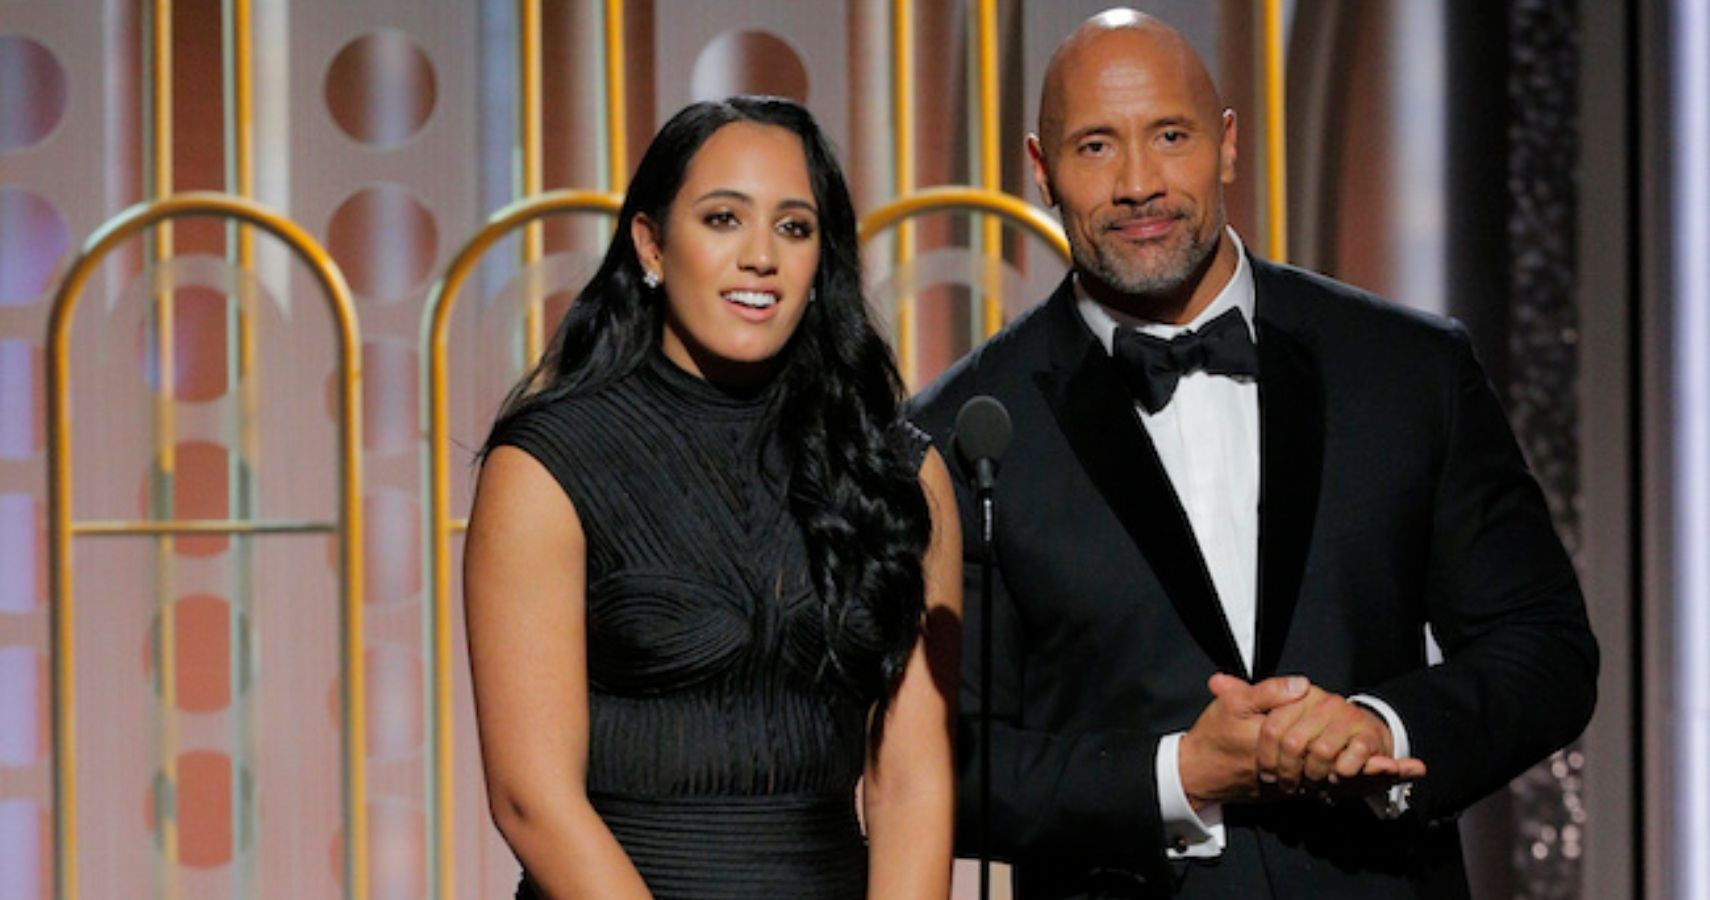 The Rock and his daughter - Simone Johnson